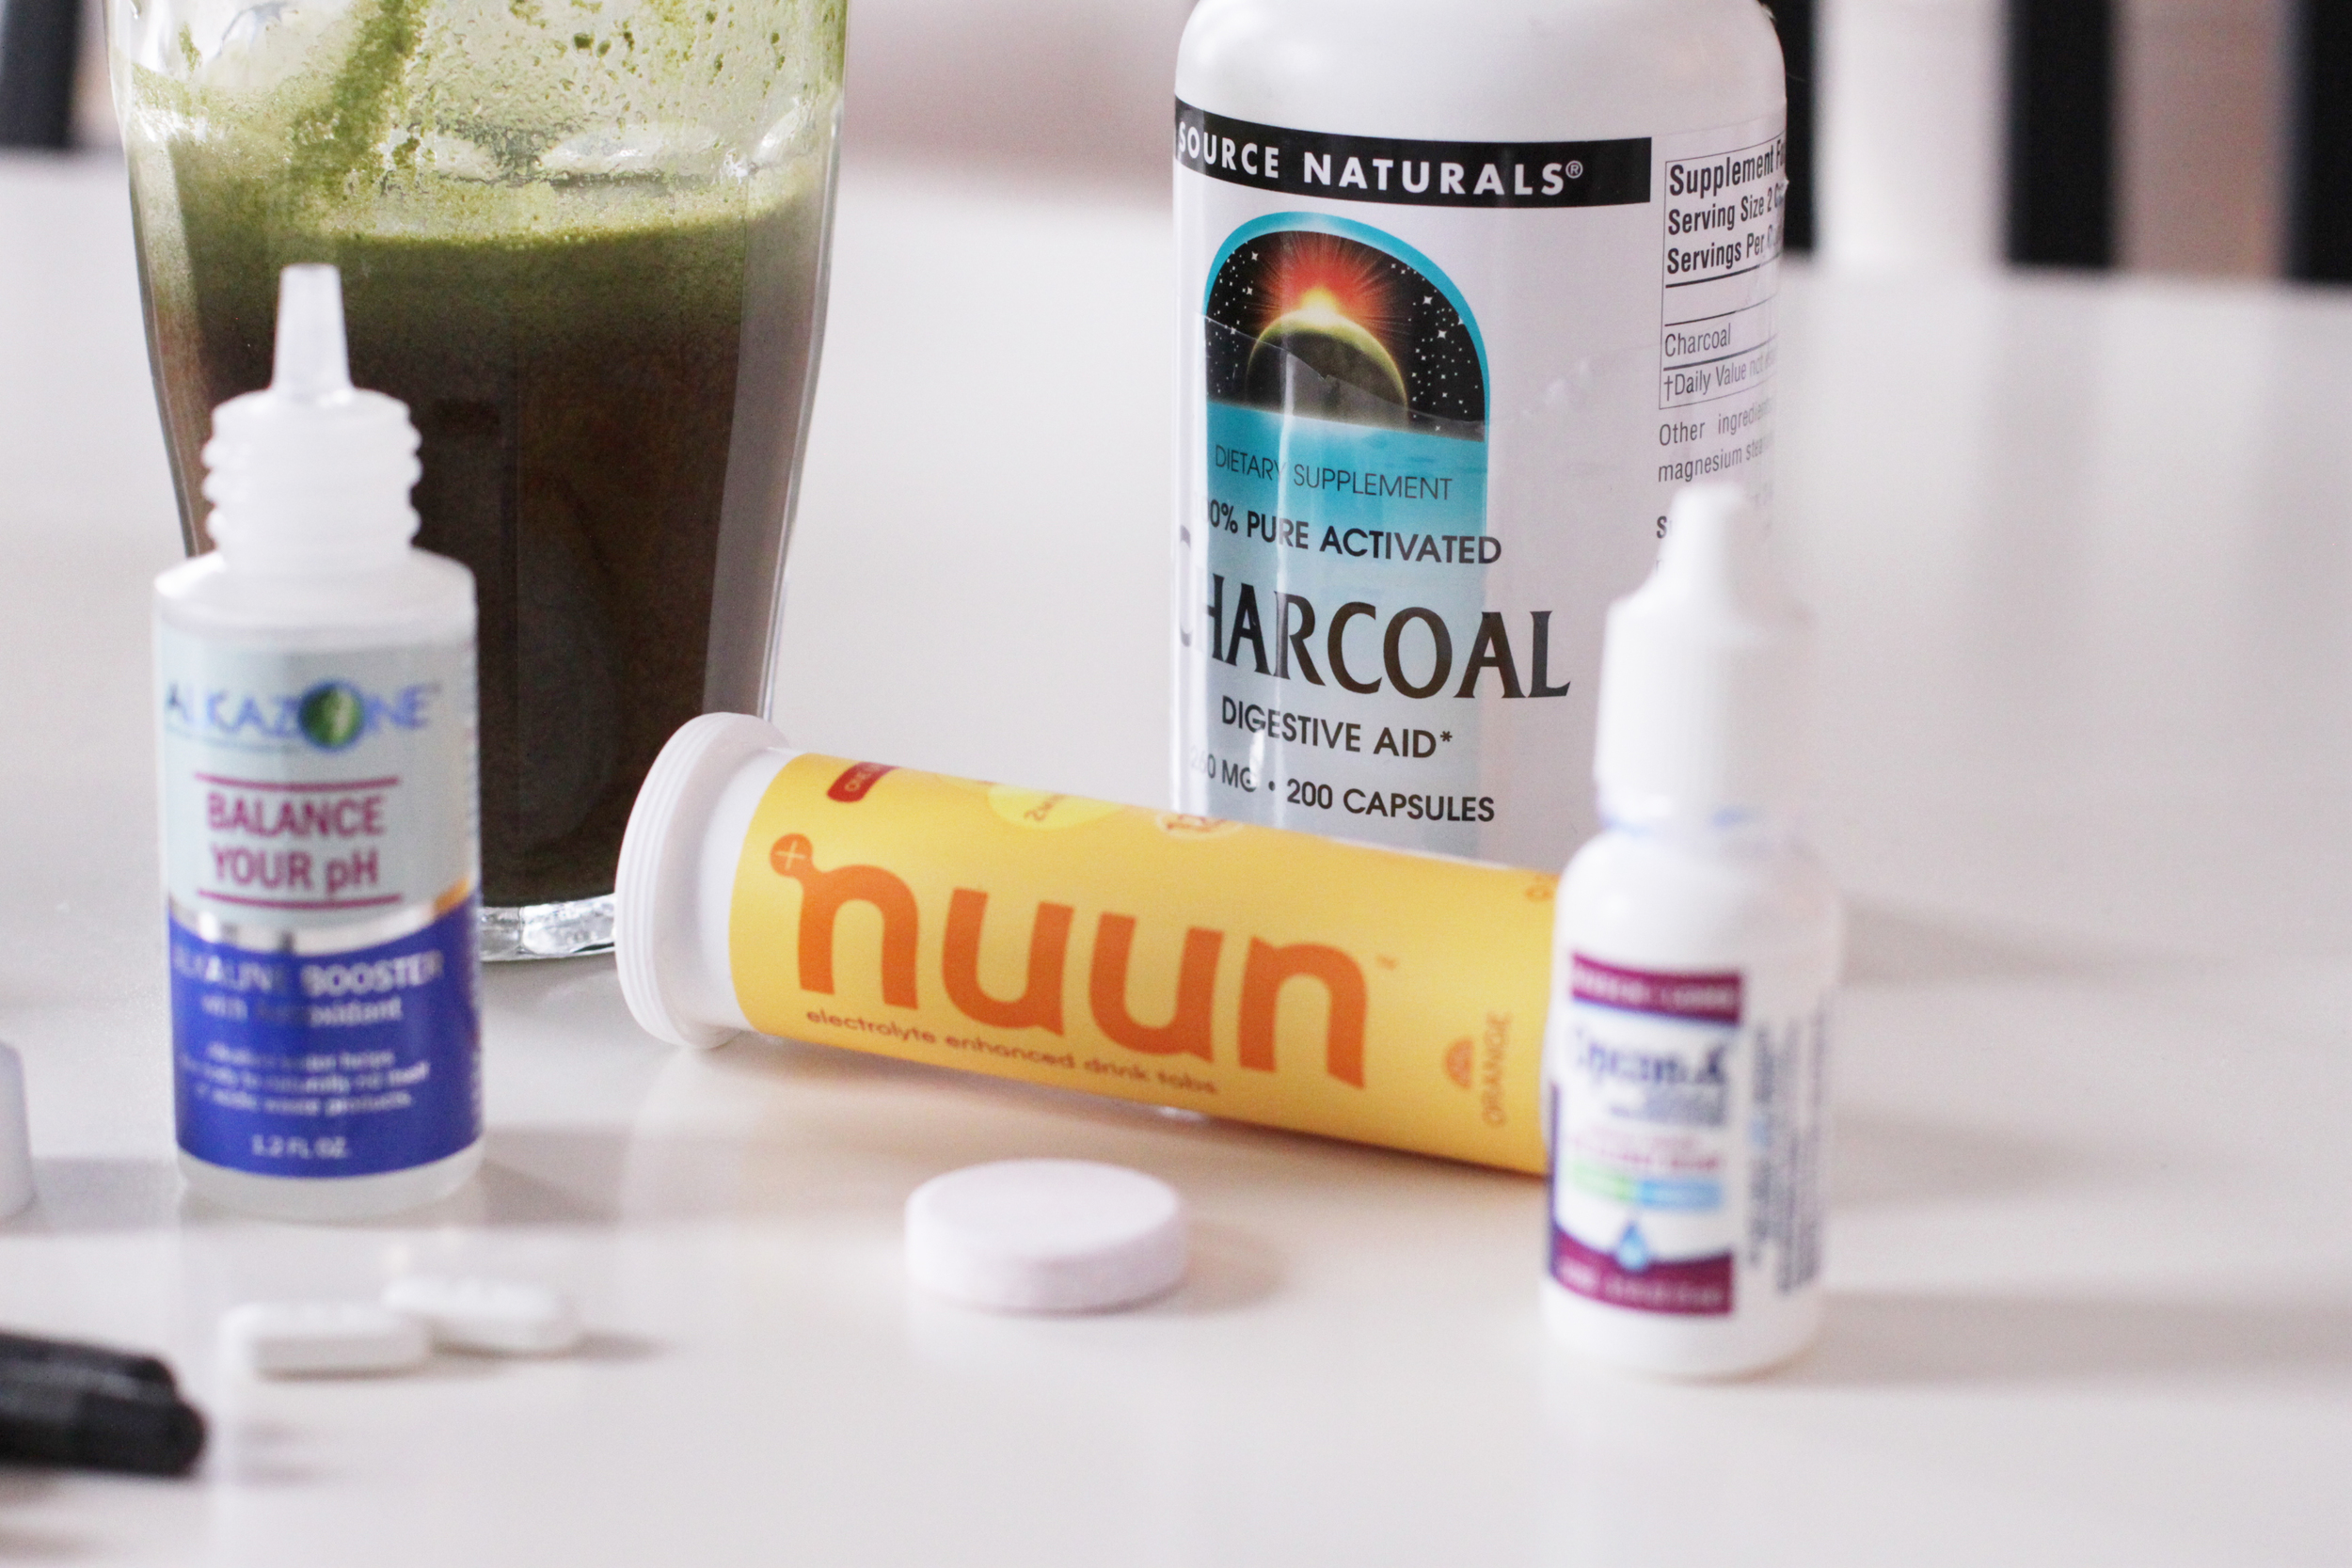 Hangover cures Nuun